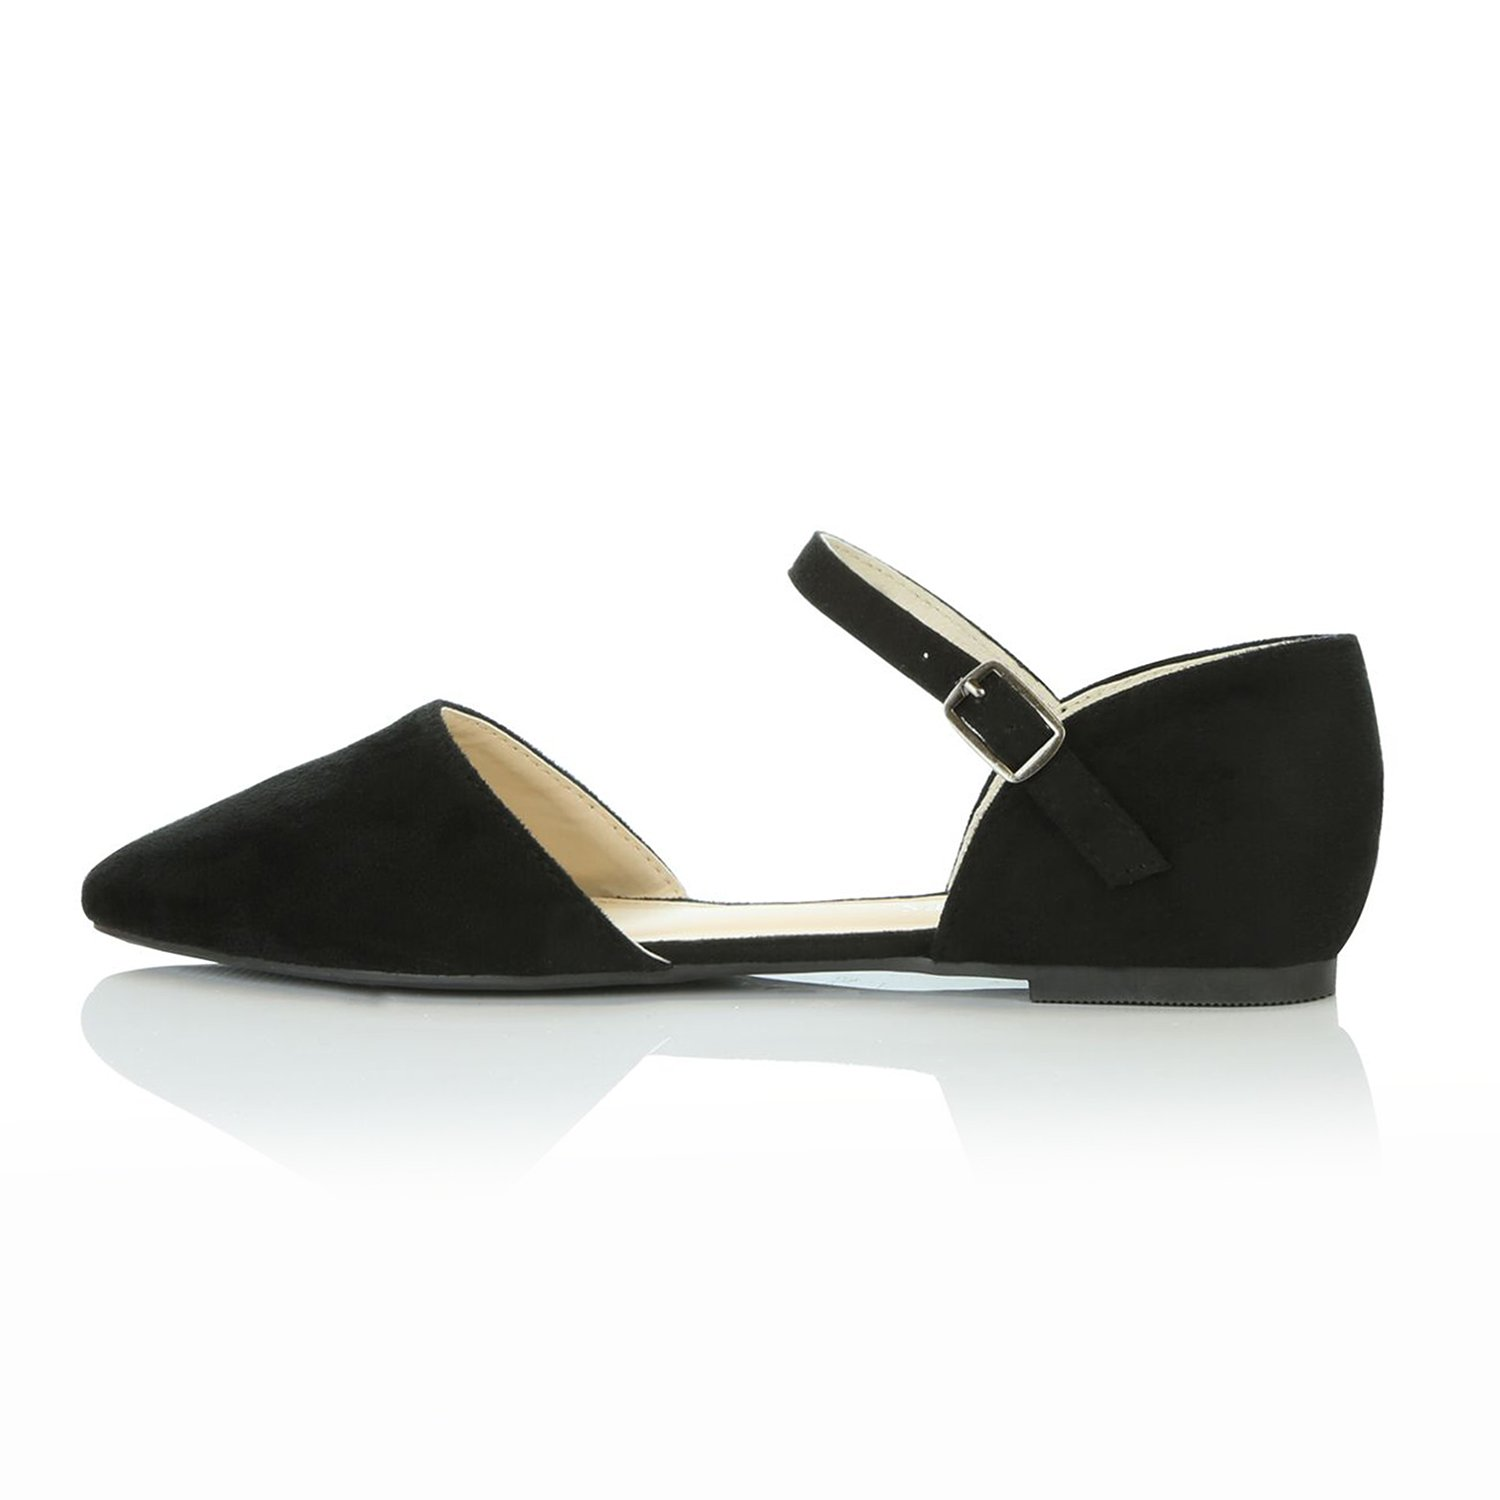 DailyShoes Women's Pointy Toe Flats D'Orsay Buckle Ankle Strap Casual Comfort Ballerina Ballet Flat Shoes, Black Suede, 9 B(M) US by DailyShoes (Image #6)